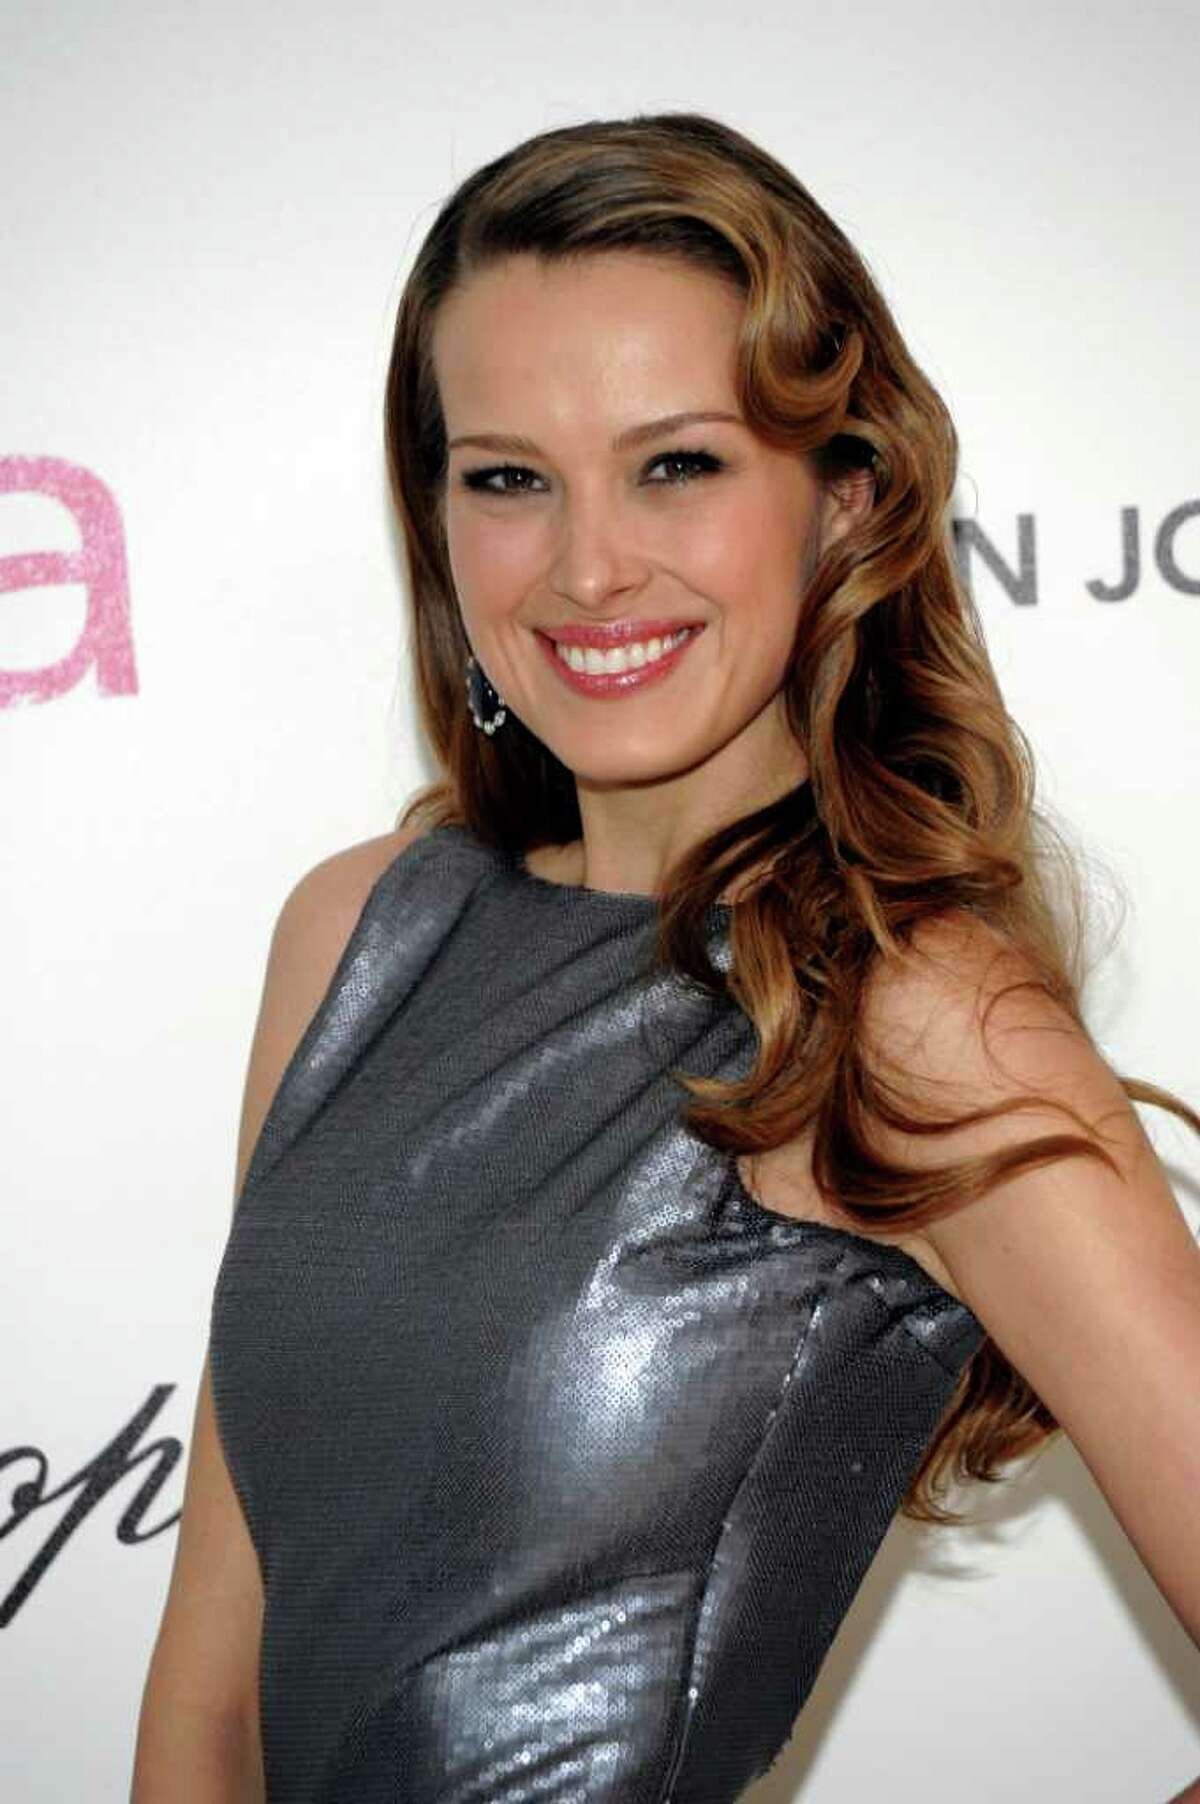 FILE - In this Feb. 27, 2011 file photo, Petra Nemcova arrives at the 2011 Elton John Academy Award viewing party in West Hollywood, Calif. Nemcova will be one of the contestants on the new season of Dancing with the Stars.